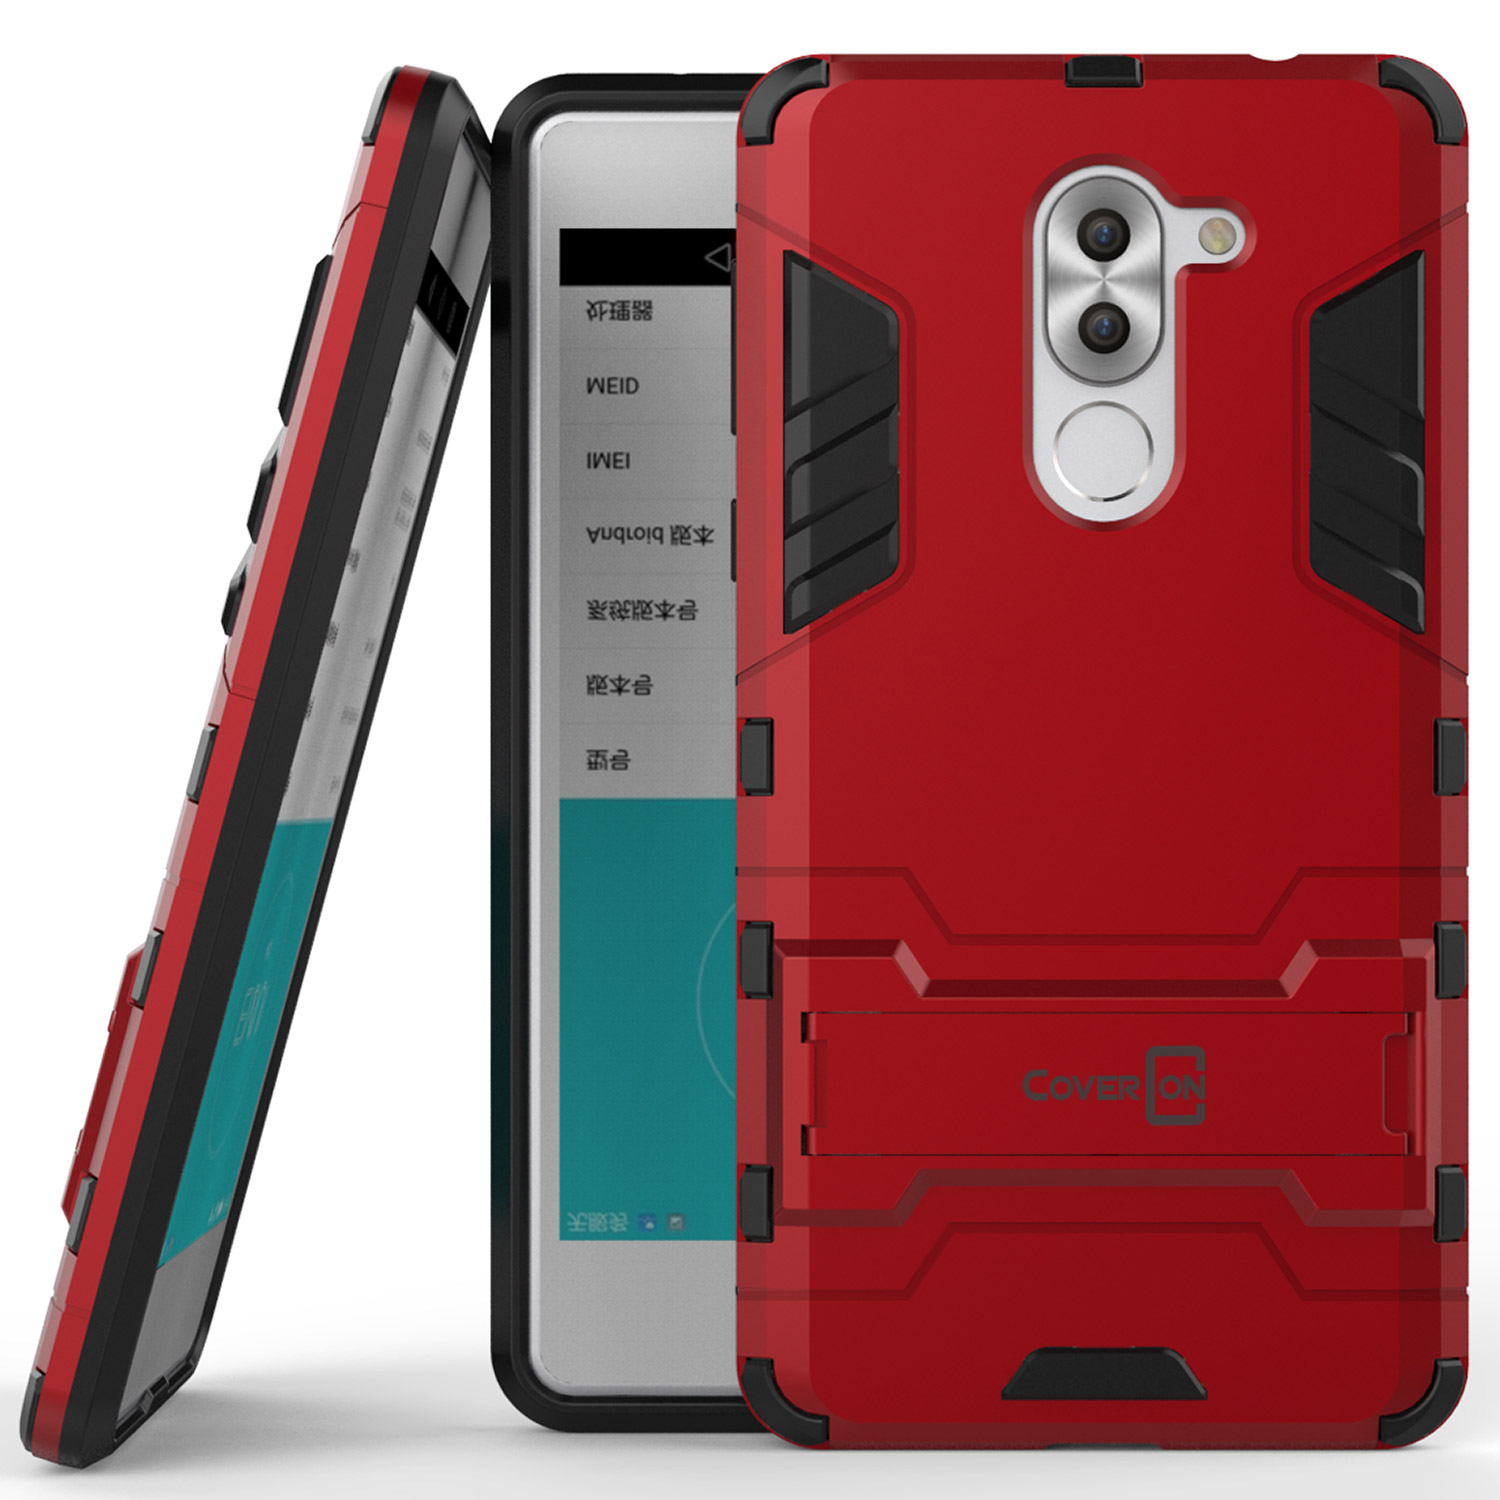 Case Xiaomi Redmi Note 3 Casing Robot Kick Series Red Free Tempered 4a Hybrid Transformer Standing Jual Hp Pro Best Wallpaper Source Coveron Huawei Honor 6x Mate 9 Lite Shadow Armor Kickstand Phone Cover